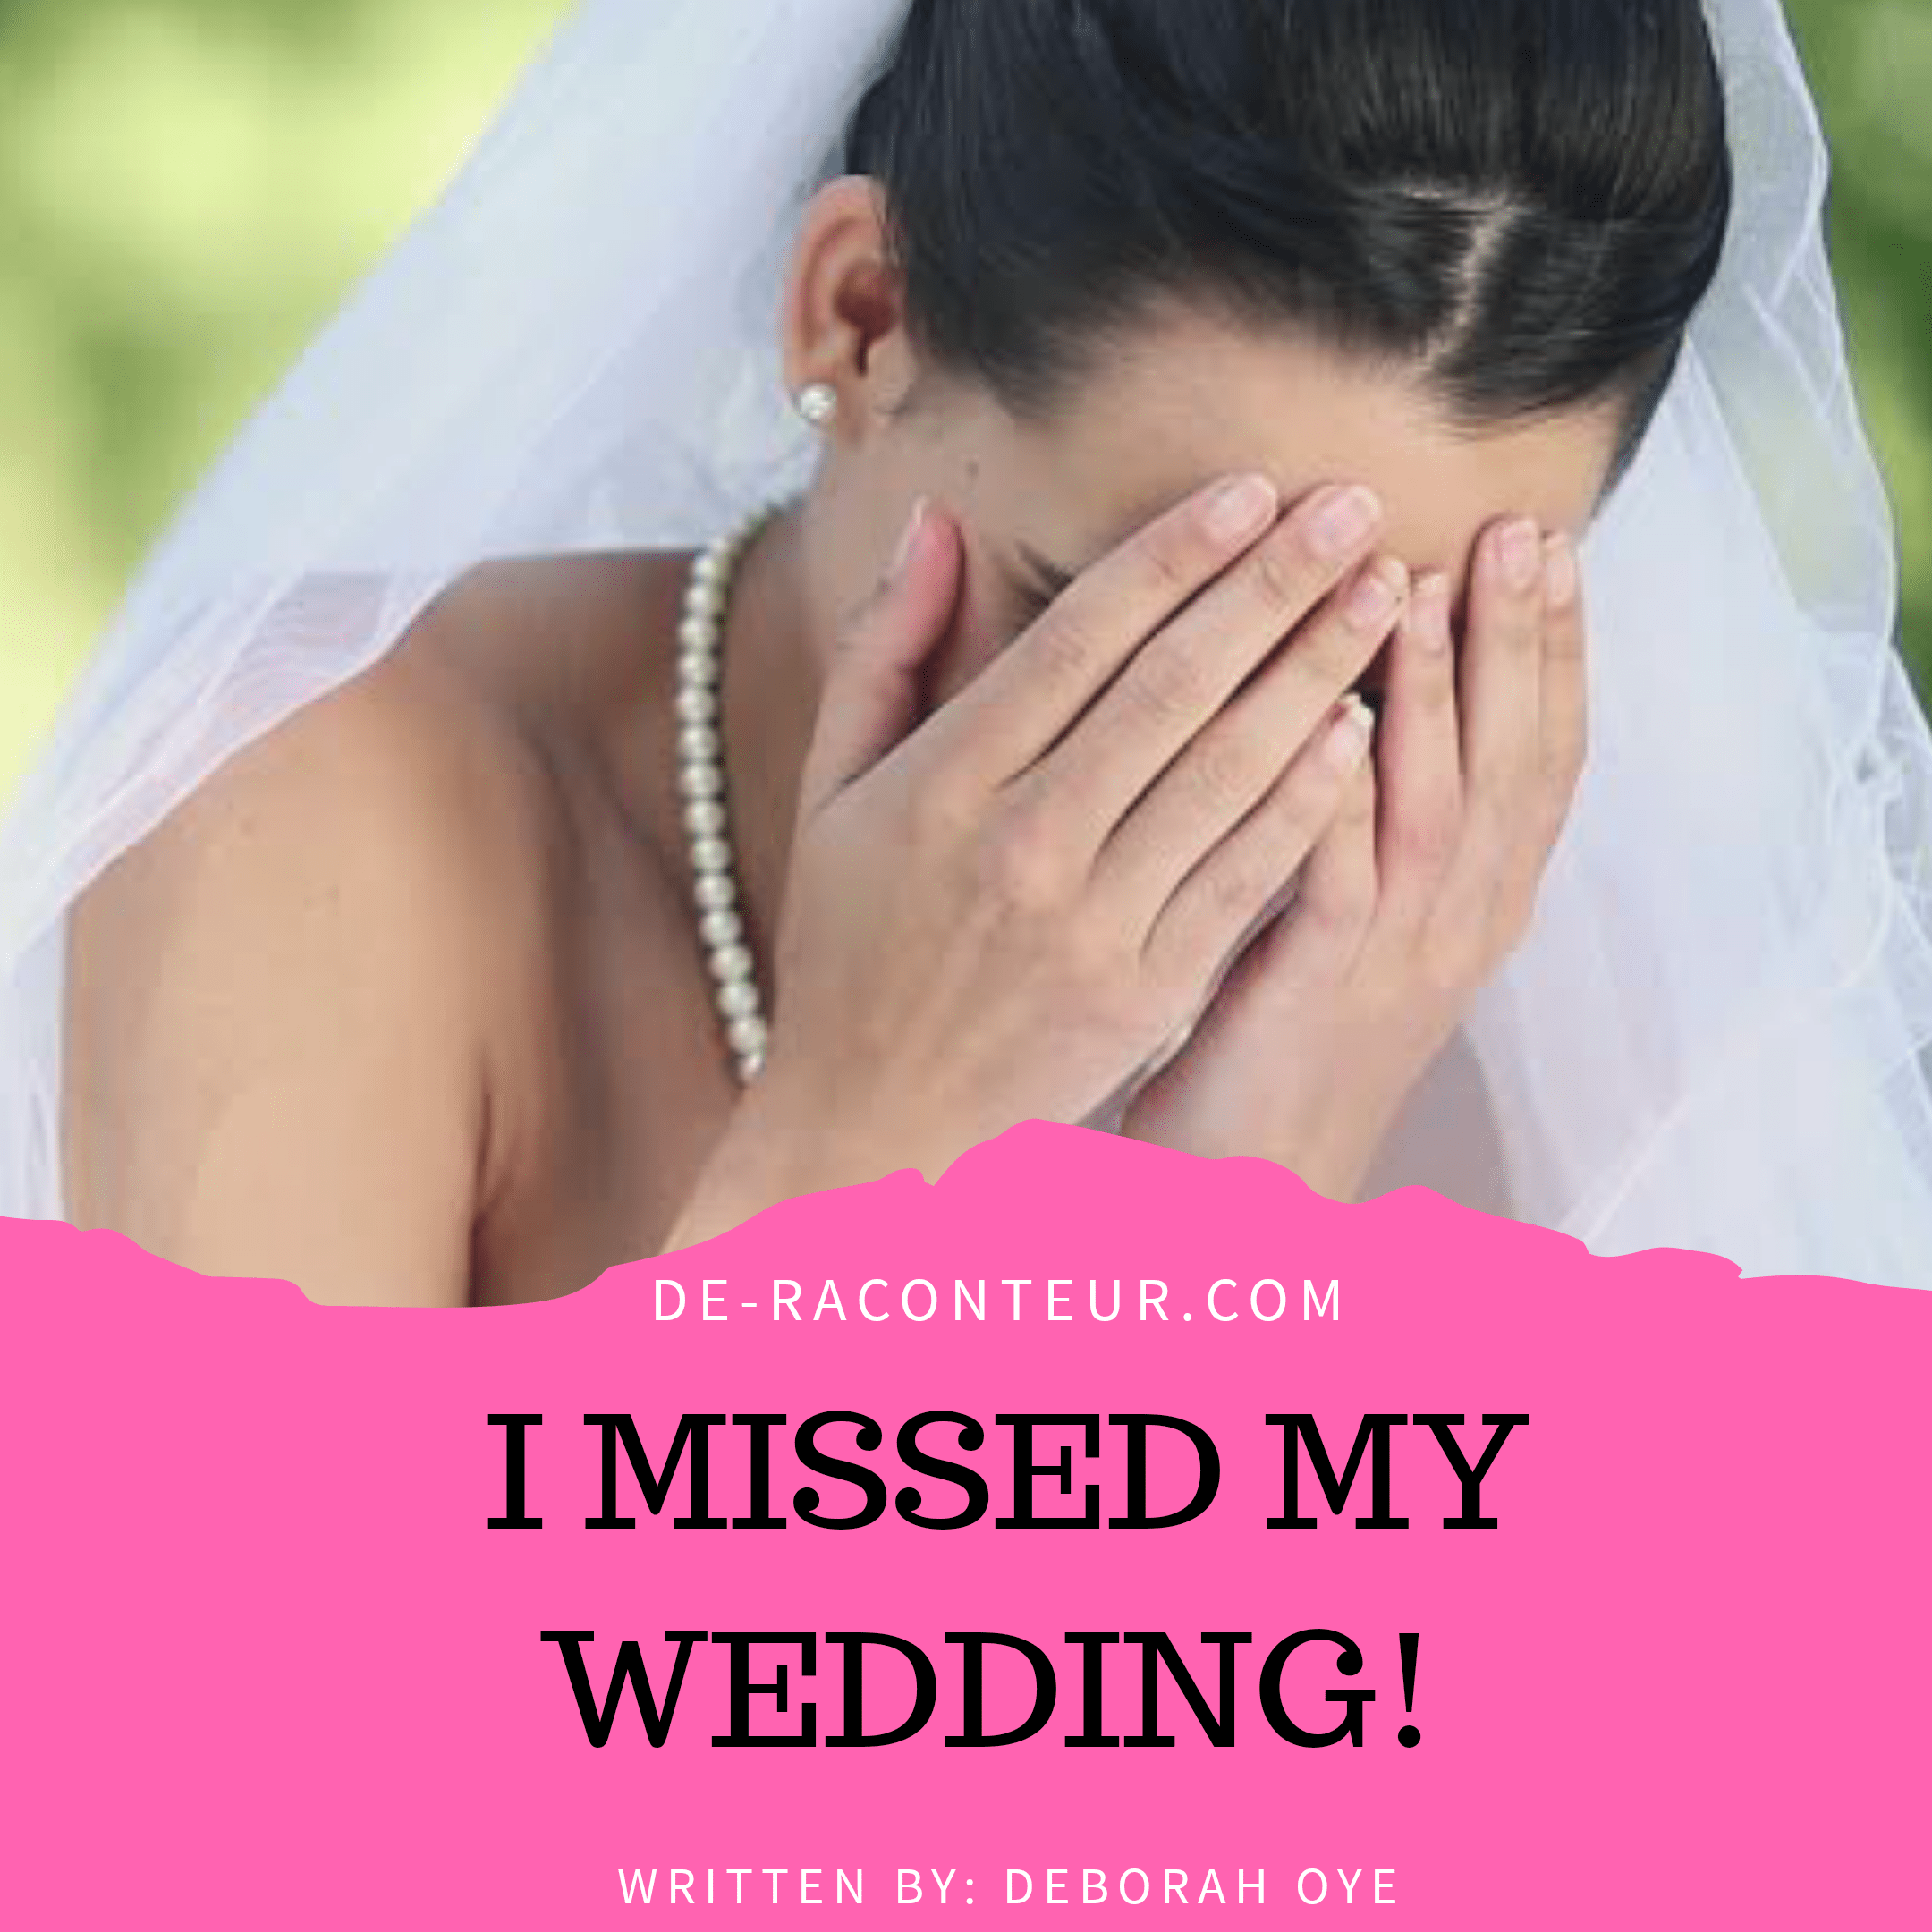 I MISSED MY WEDDING (A short inspiring story)